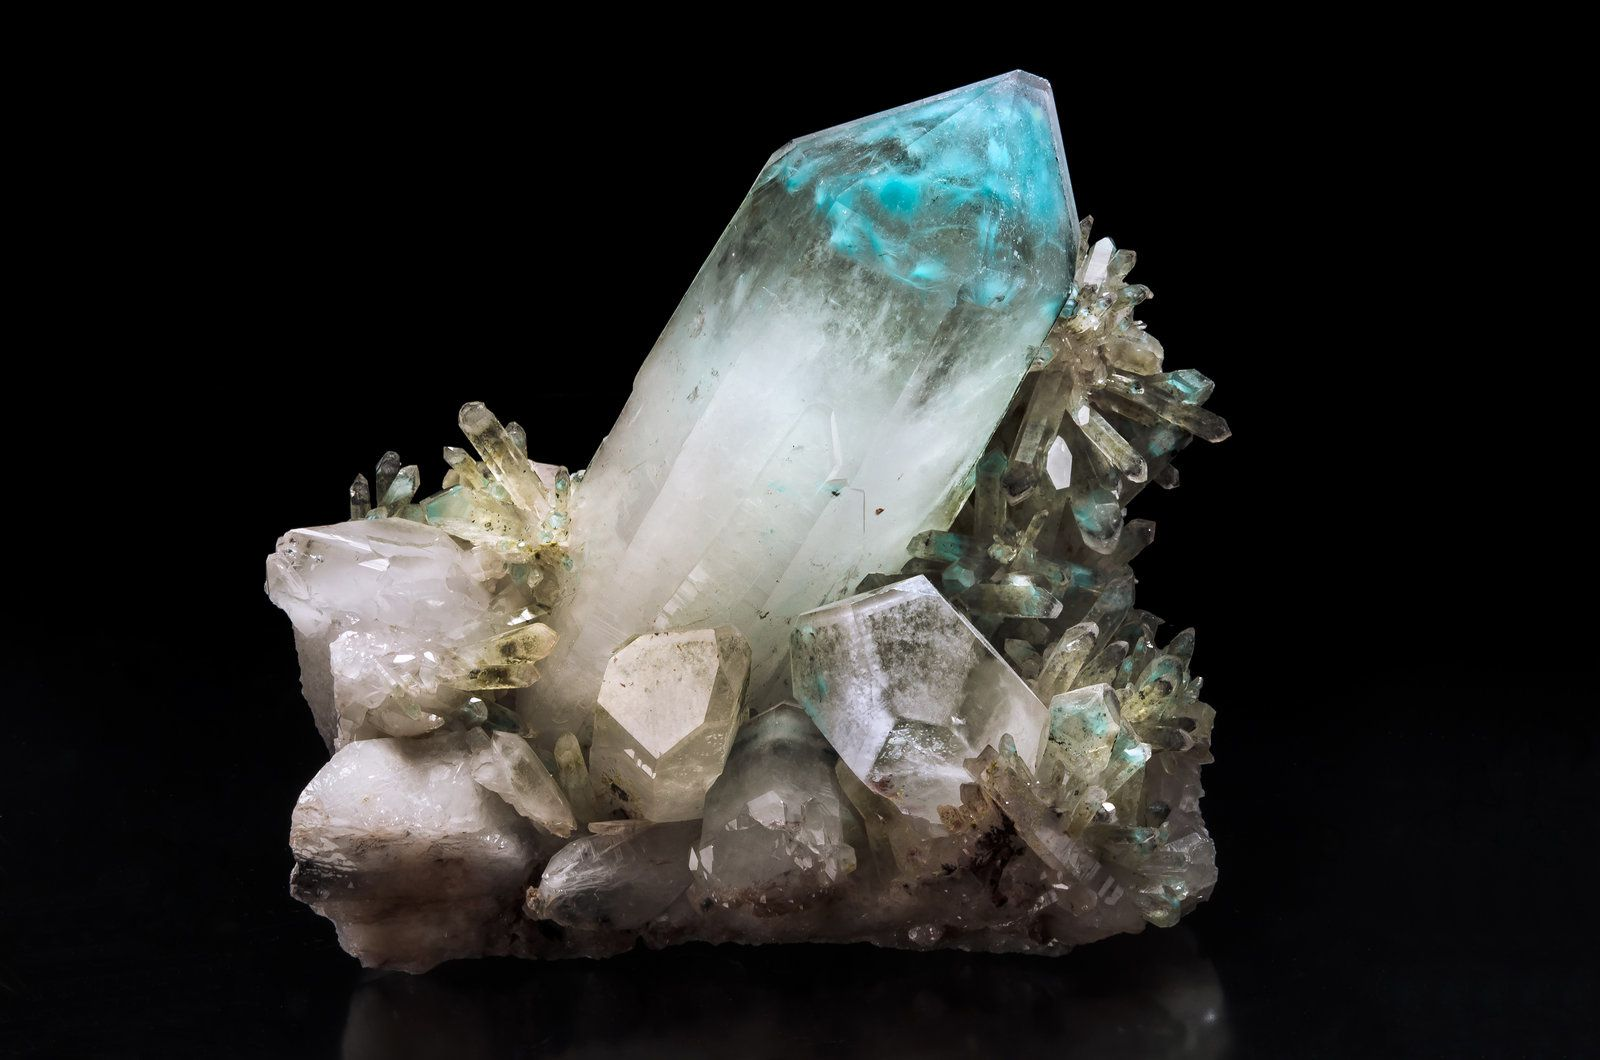 Ajoite in Quartz from Messina mine, South Africa (Photos: Thomas Spann)